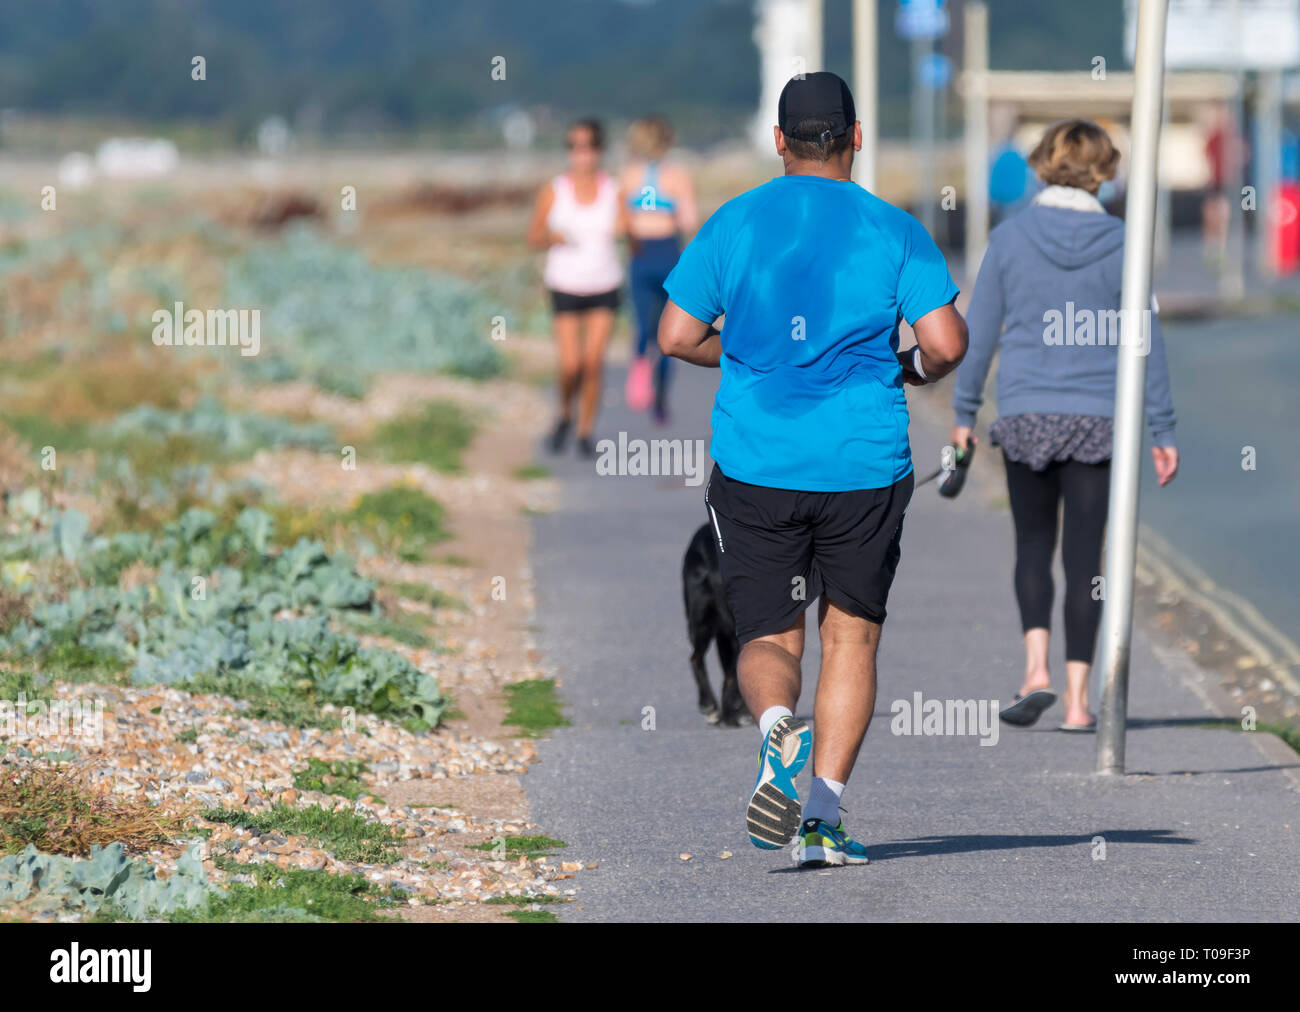 Man jogging by the roadside with sweat covering his shirt in Summer in the UK. Male jogger sweating, perspiring, back covered in perspiration. - Stock Image